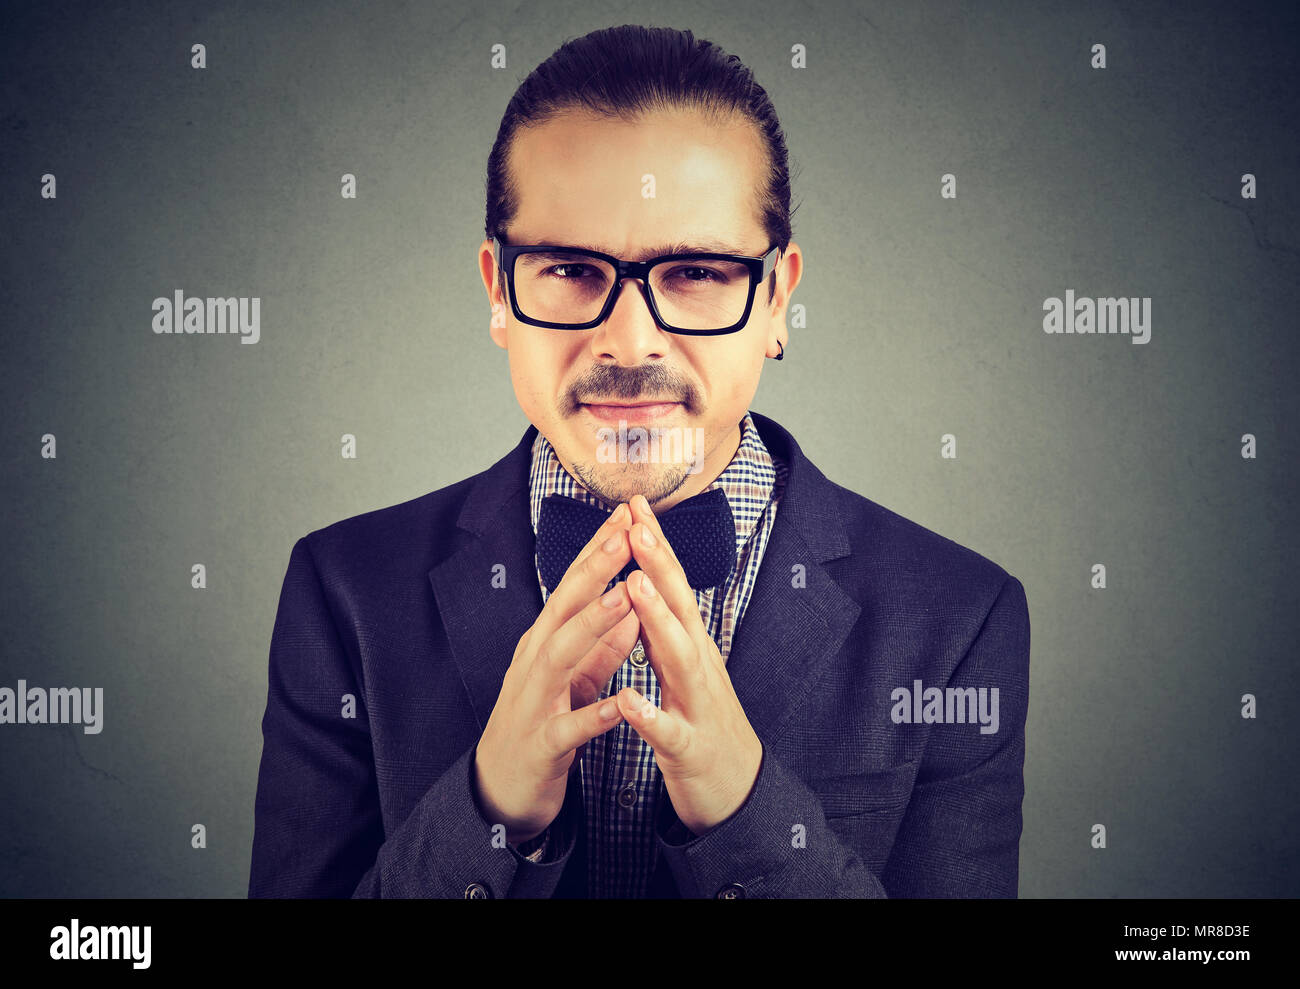 Sly business man in glasses looking at camera plotting a revenge - Stock Image